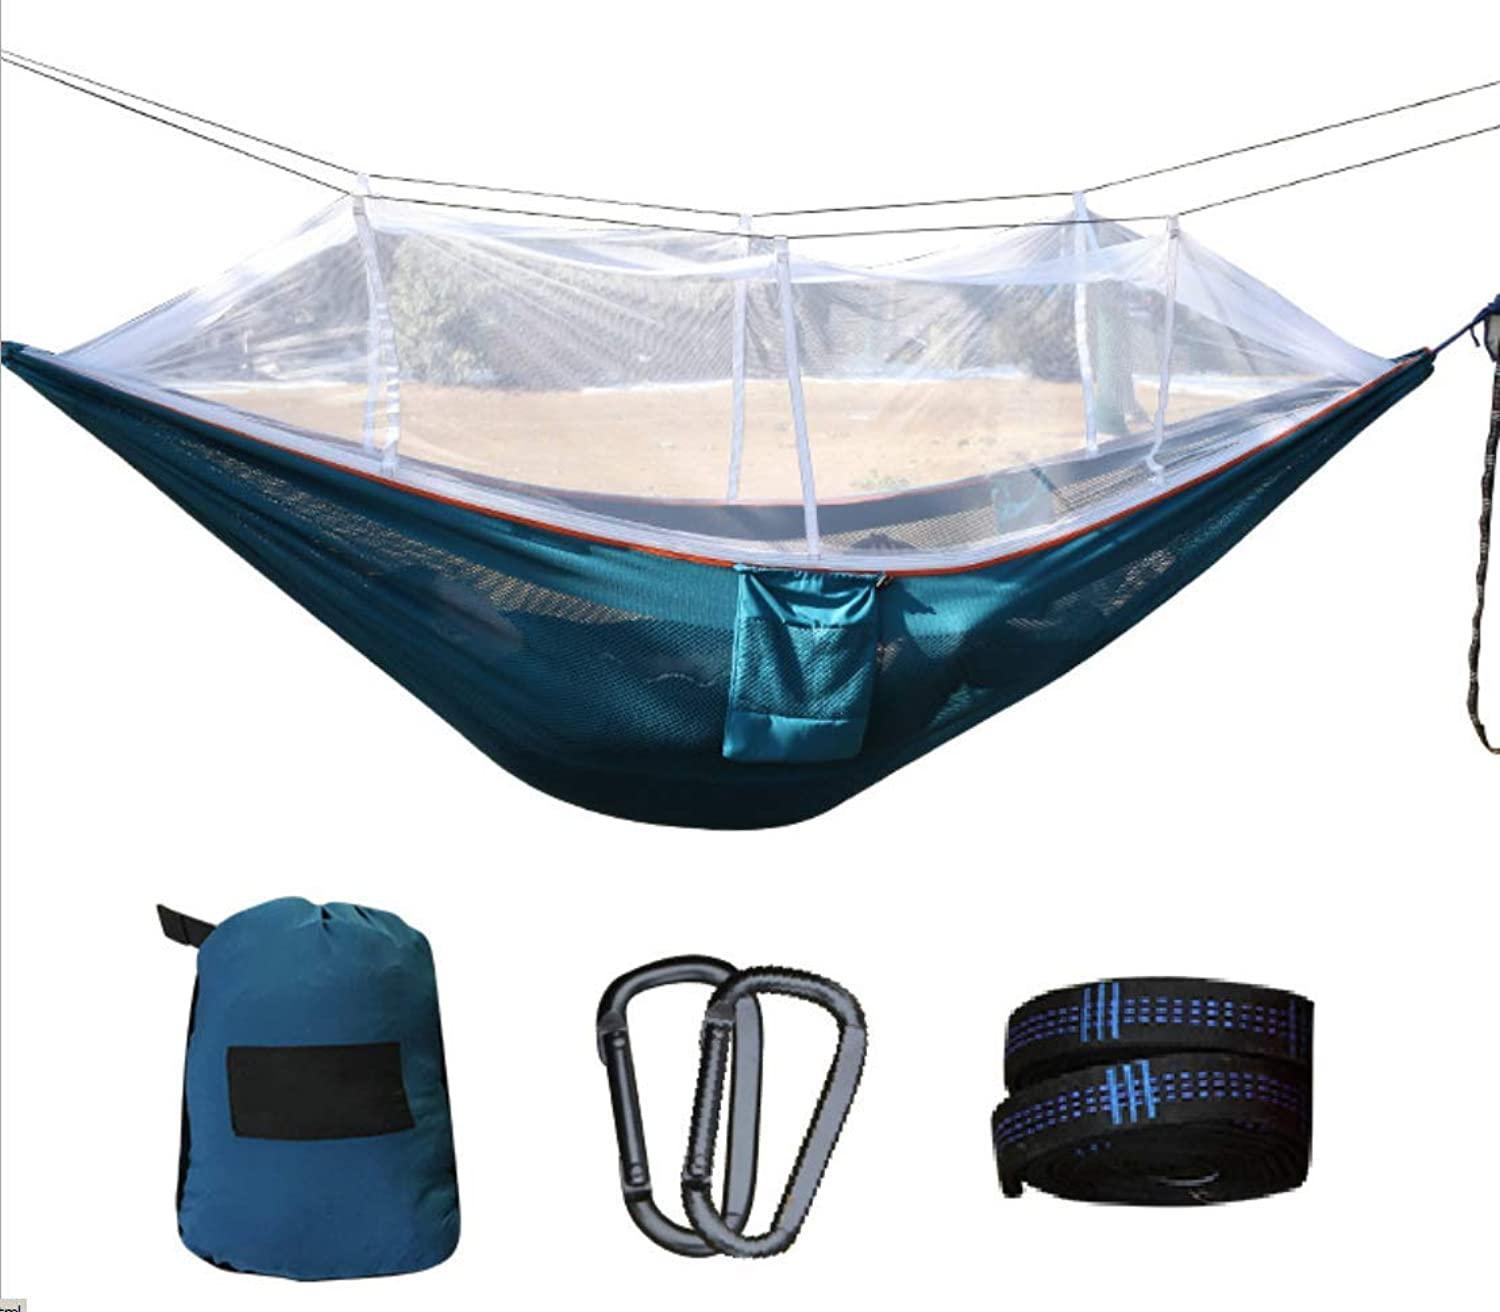 Camping Hammock with Mosquito Net  300kg Load Capacity Breathable QuickDrying Parachute Nylon, for Outdoor Hiking Backpacking Traveling (Green)